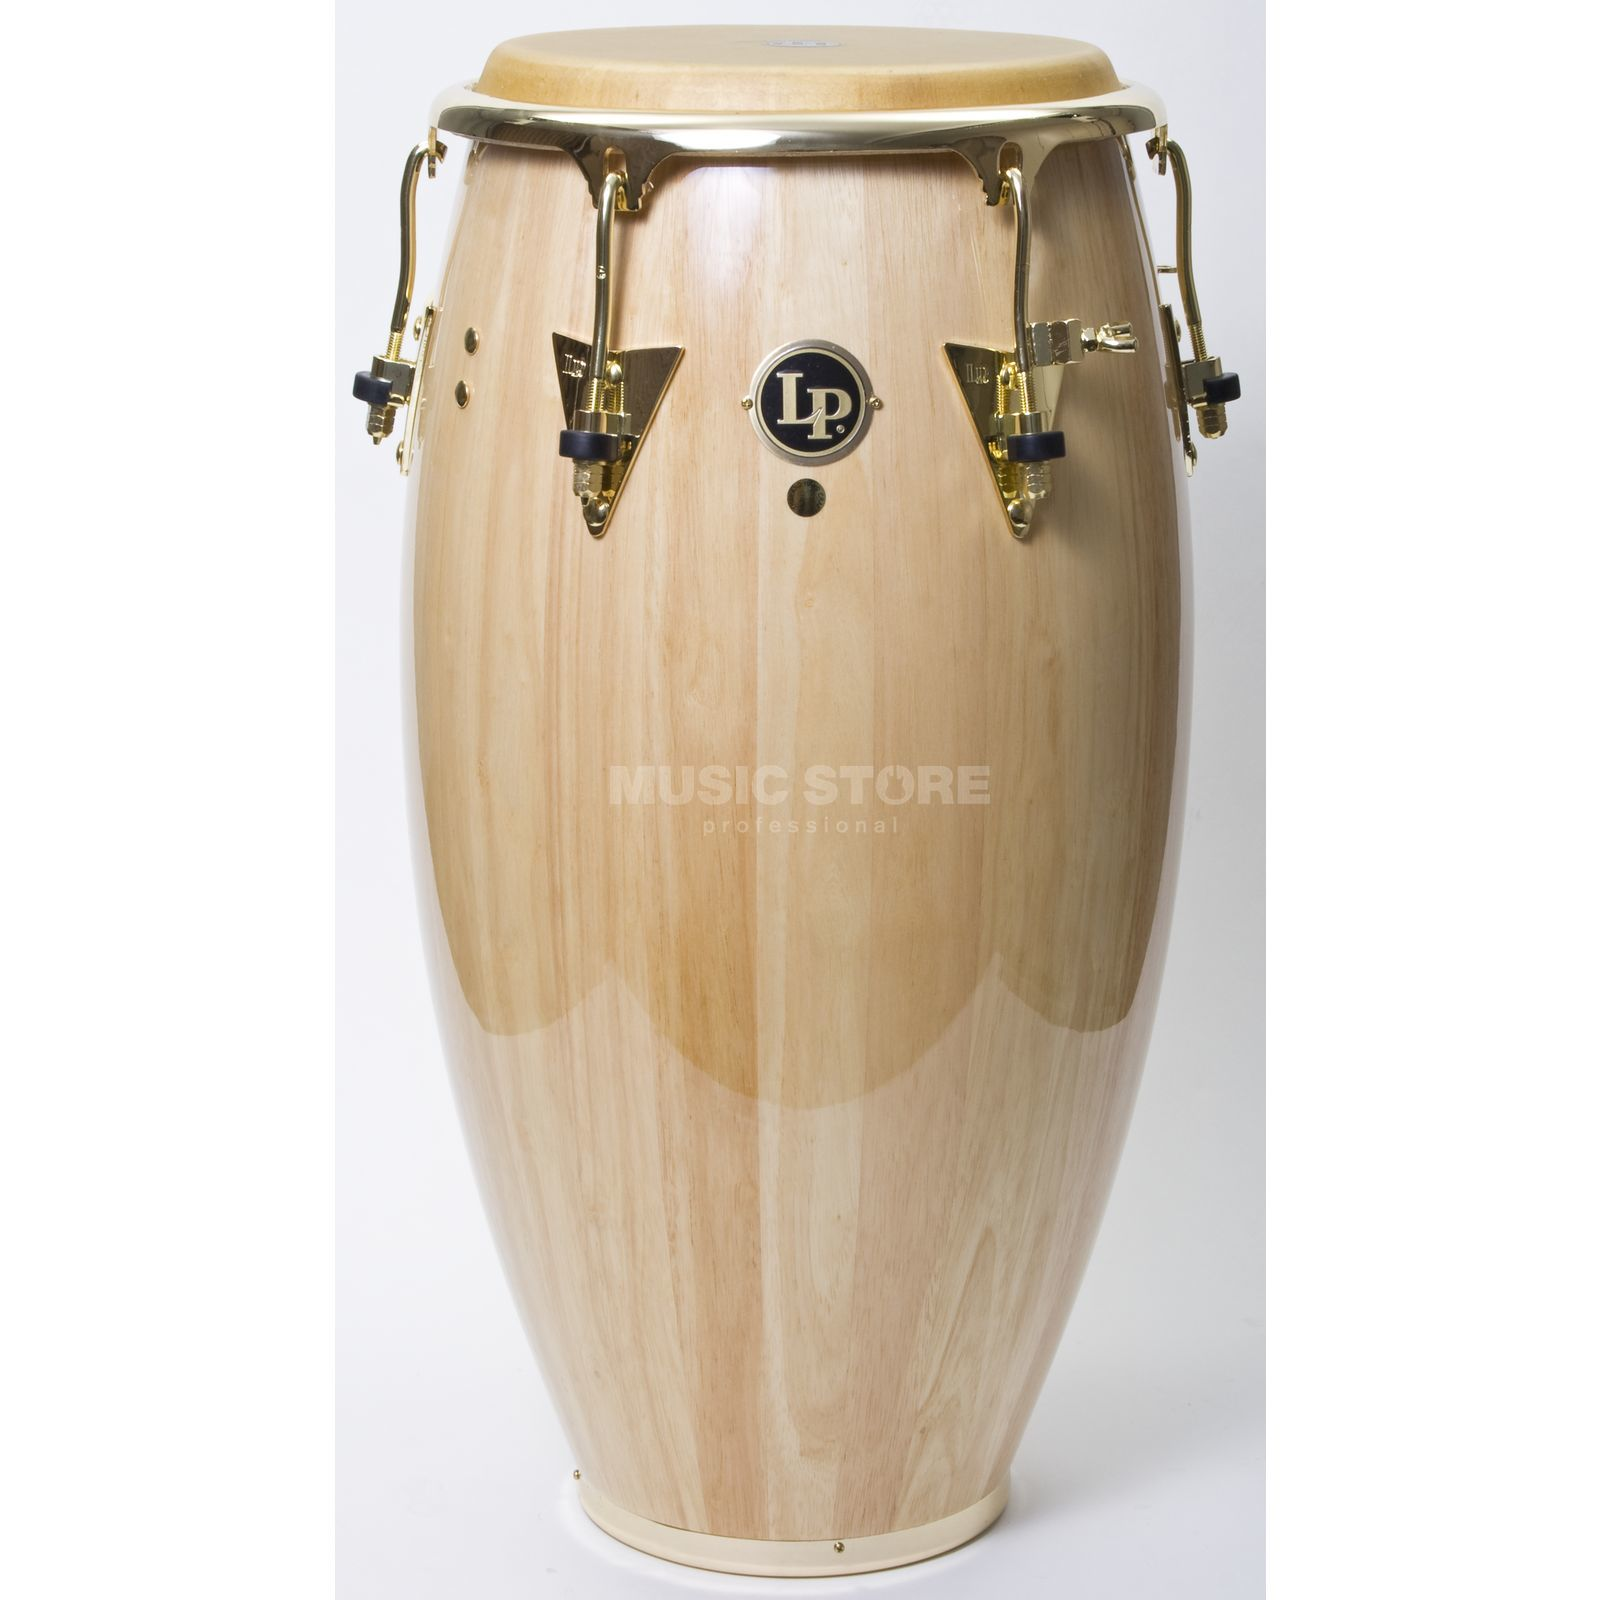 "Latin Percussion Classic Conga LP559X-AW 11 3/4"" Conga, Natural Produktbild"